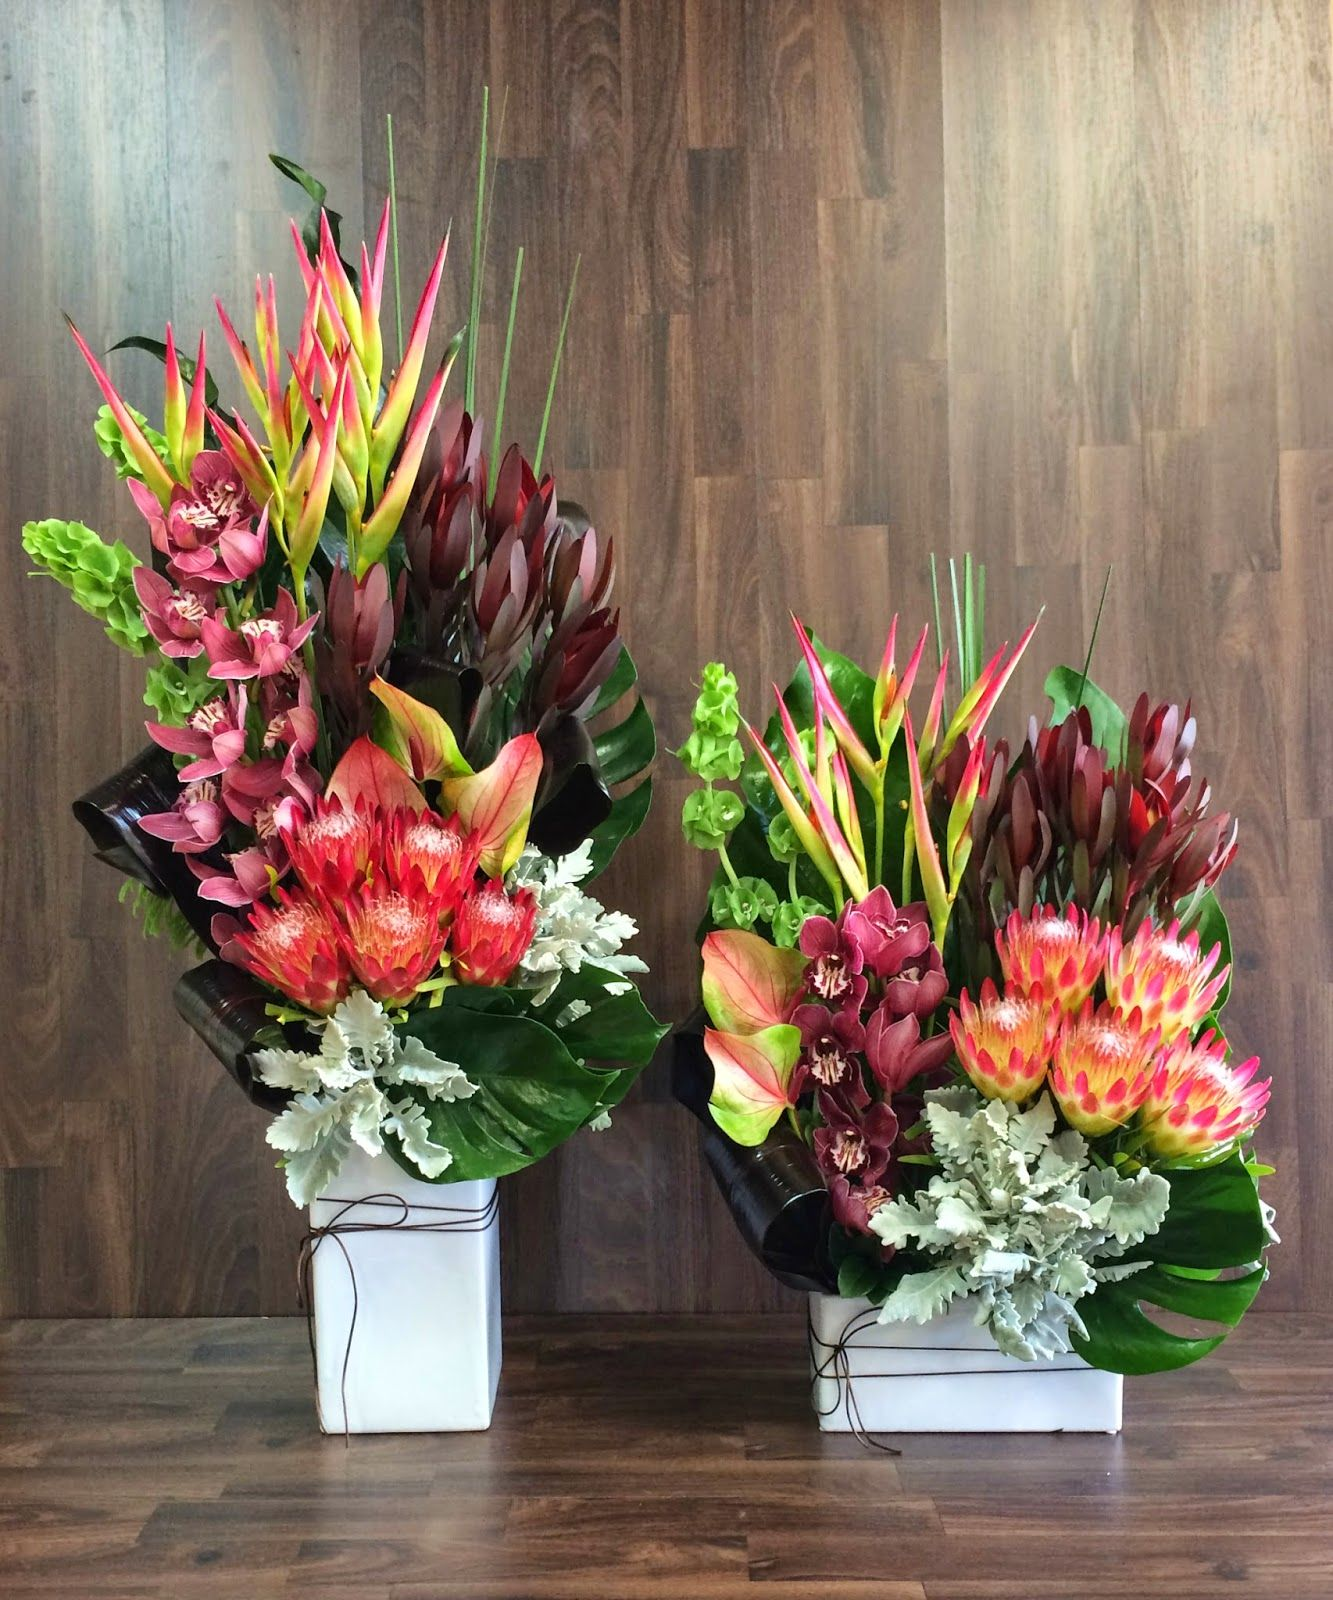 Australian Native Flower Arrangements For Church Event in Baulkham     Urban Flower  Australian Native Flower Arrangements  Very interesting  Protea they have used I haven t seen those ones before